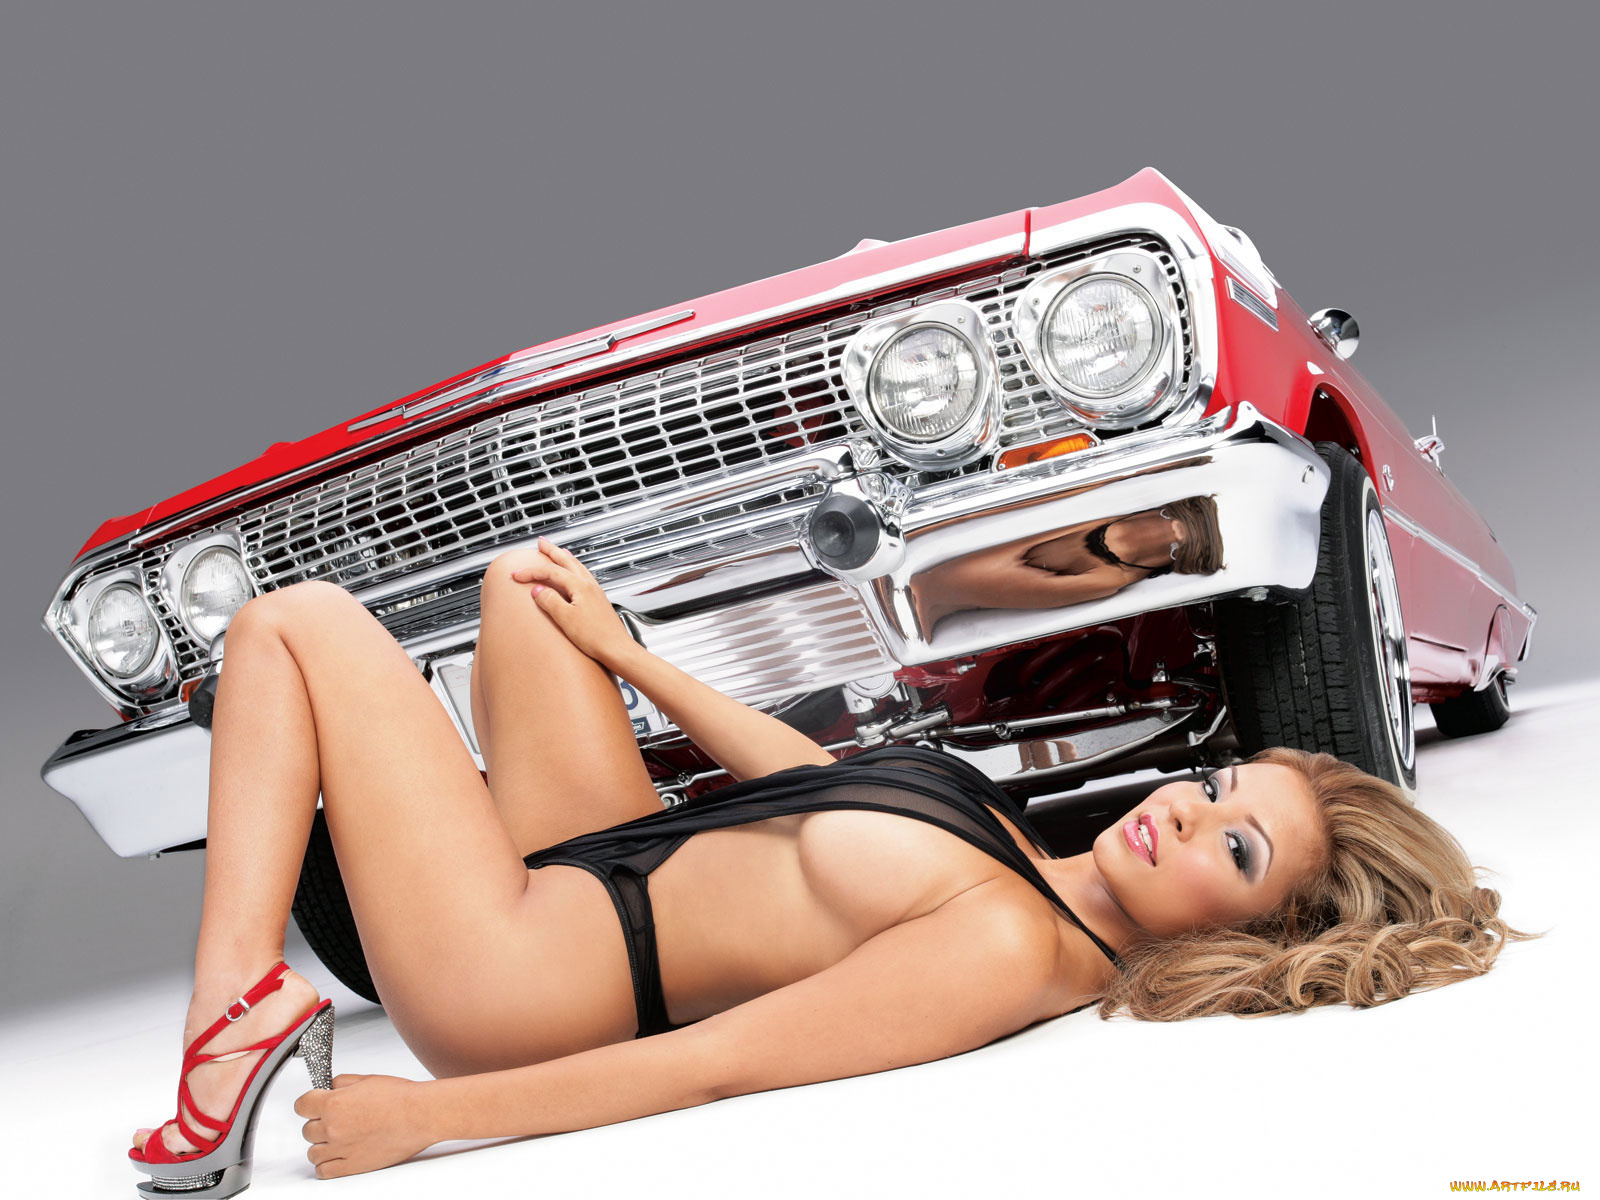 Girl lowrider faviola amor, party drunk naked sex